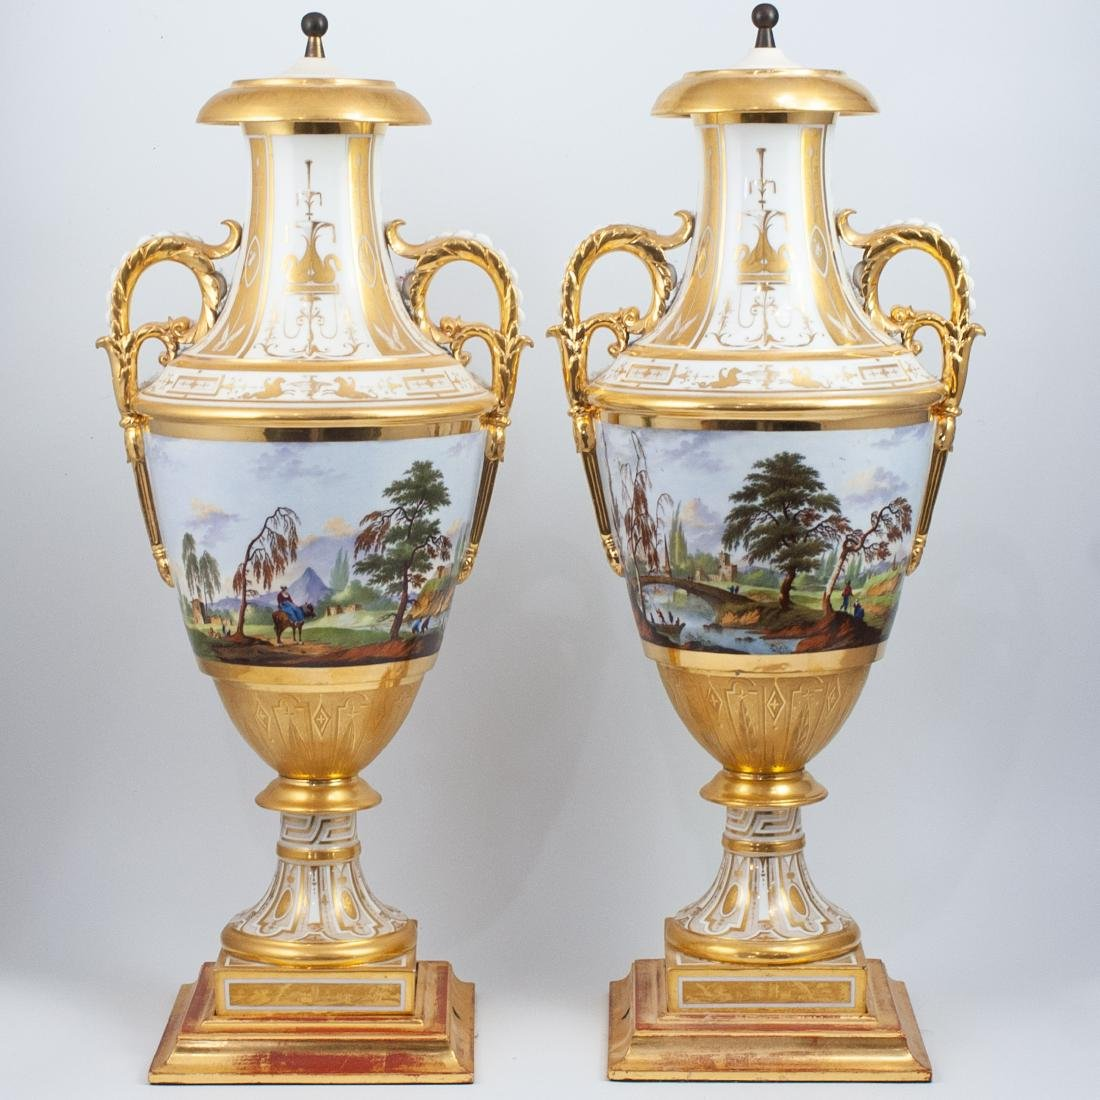 Pair Of 19th Cent. Sevres Porcelain Urns - 8